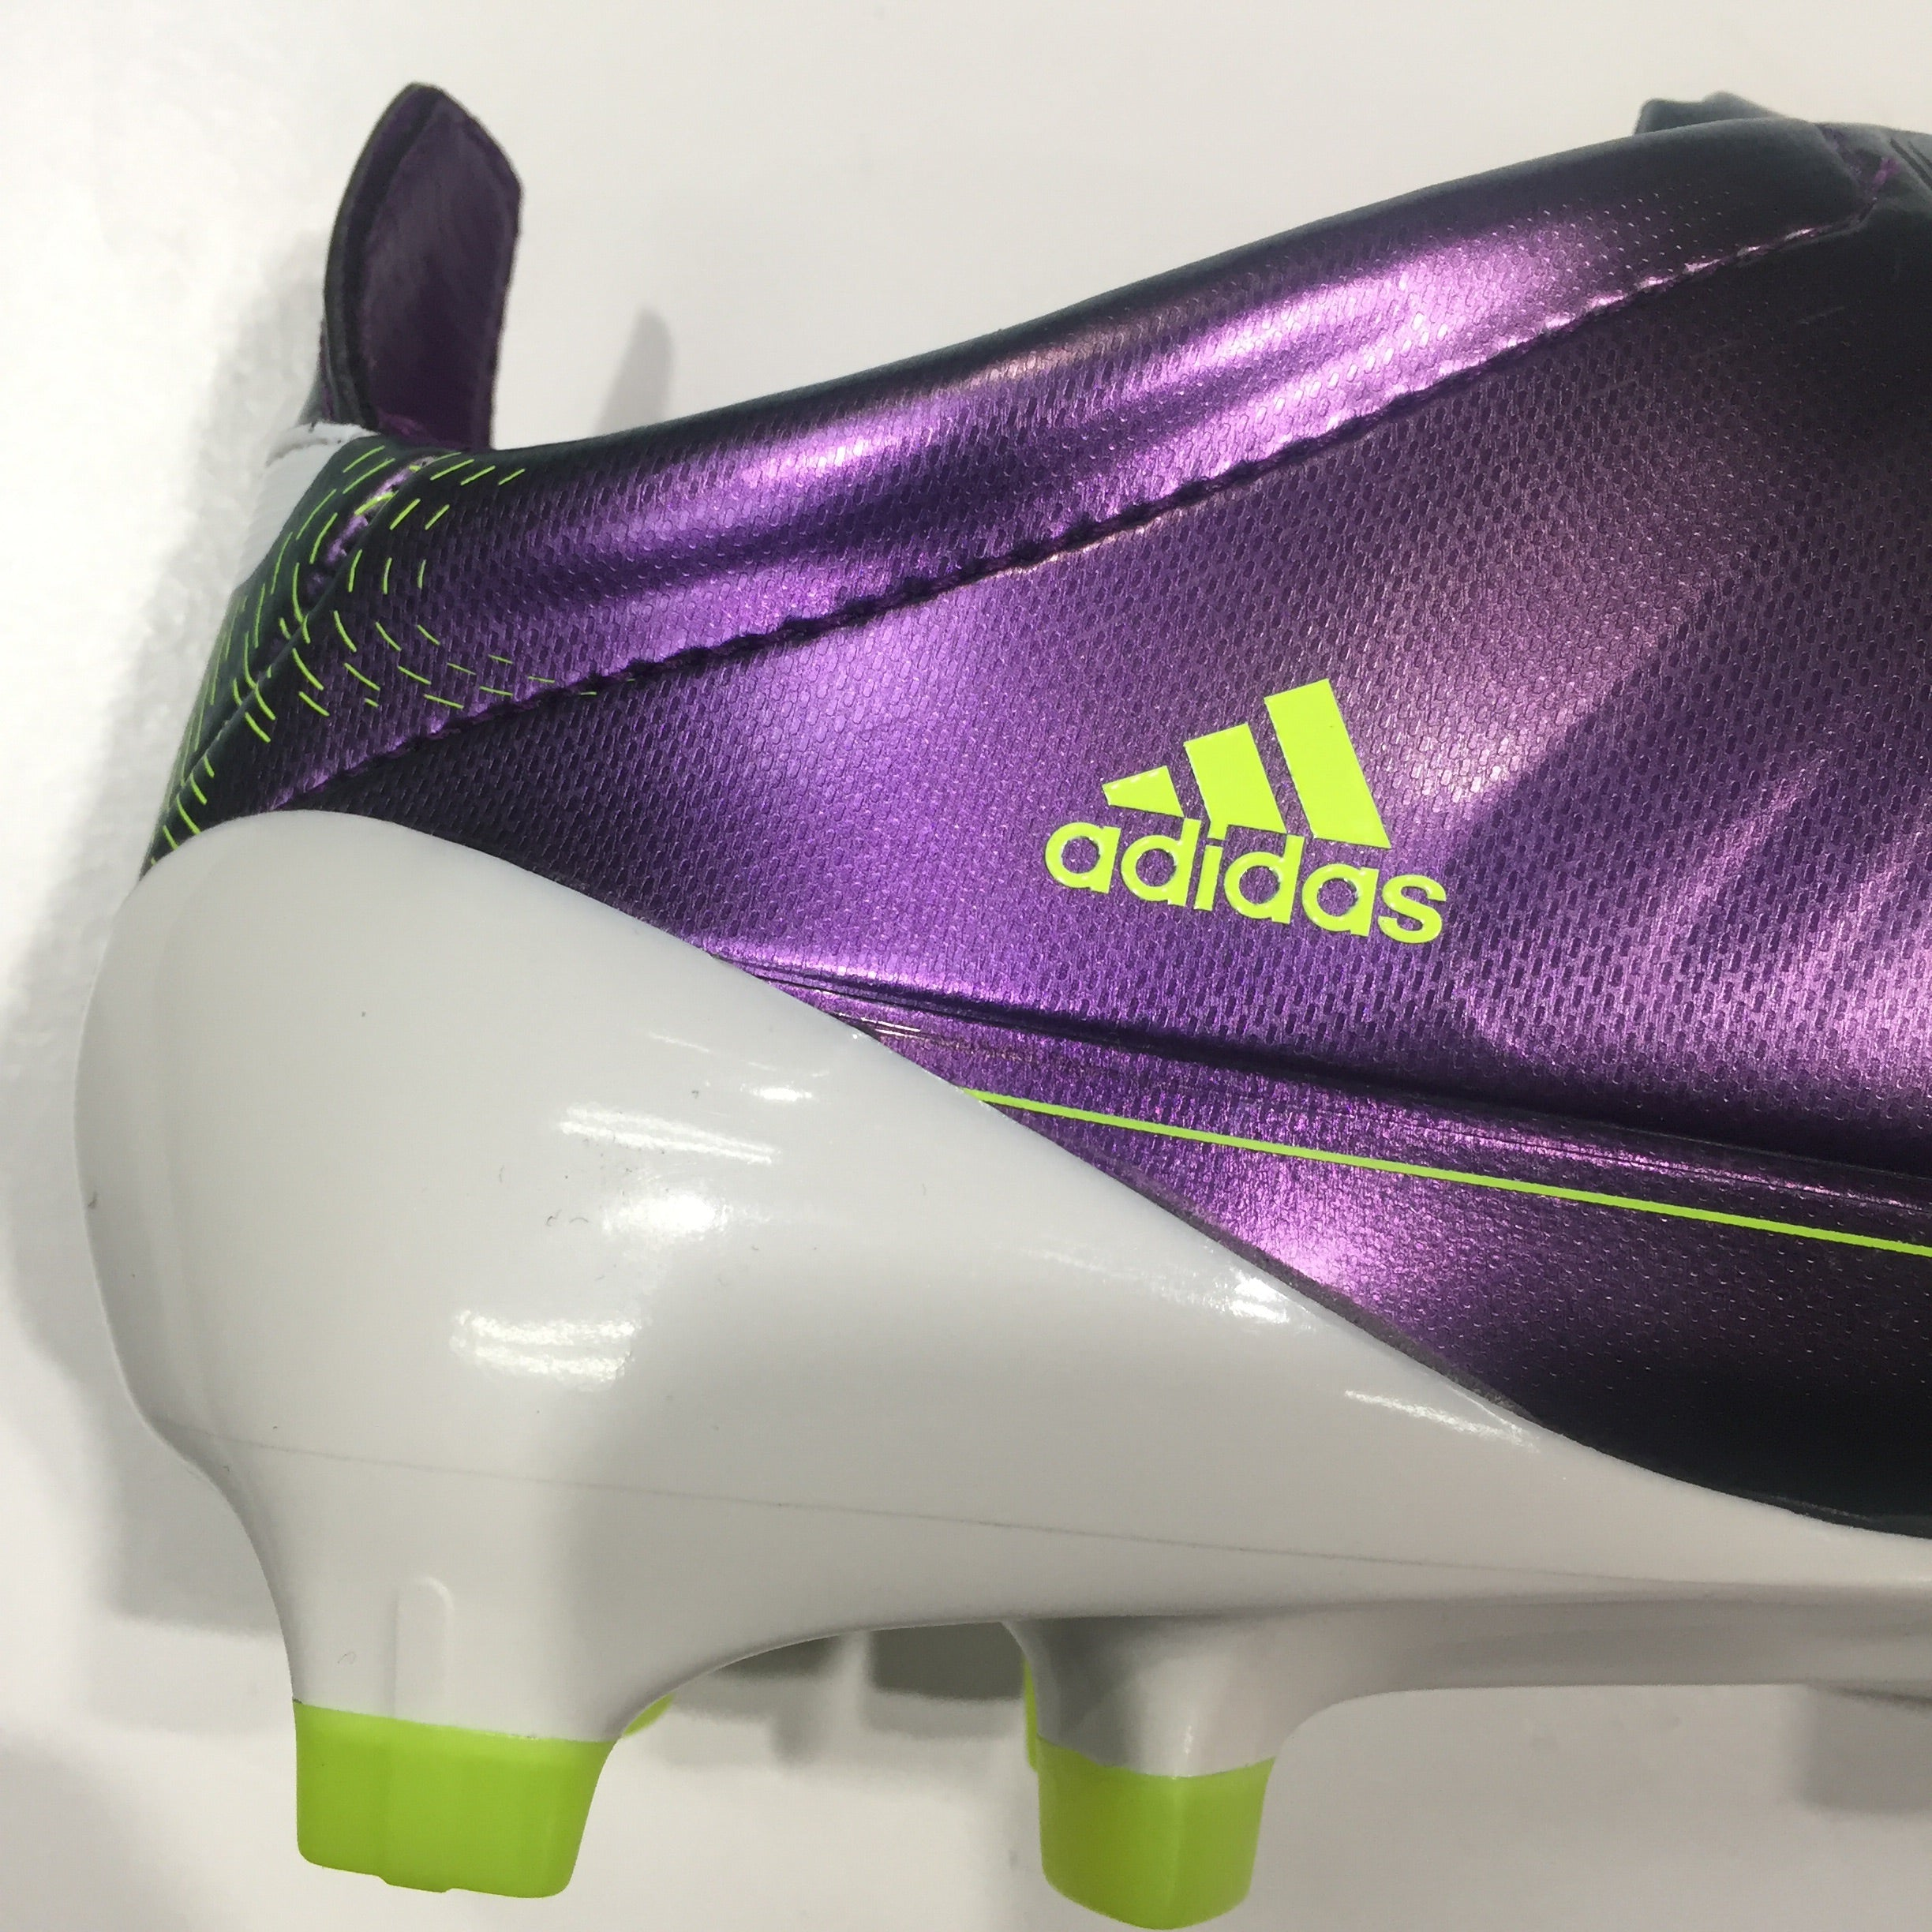 ccb0b5b9a Adidas F50 Adidas TRX FG White and Multi Lionel Messi Boots – Famous ...